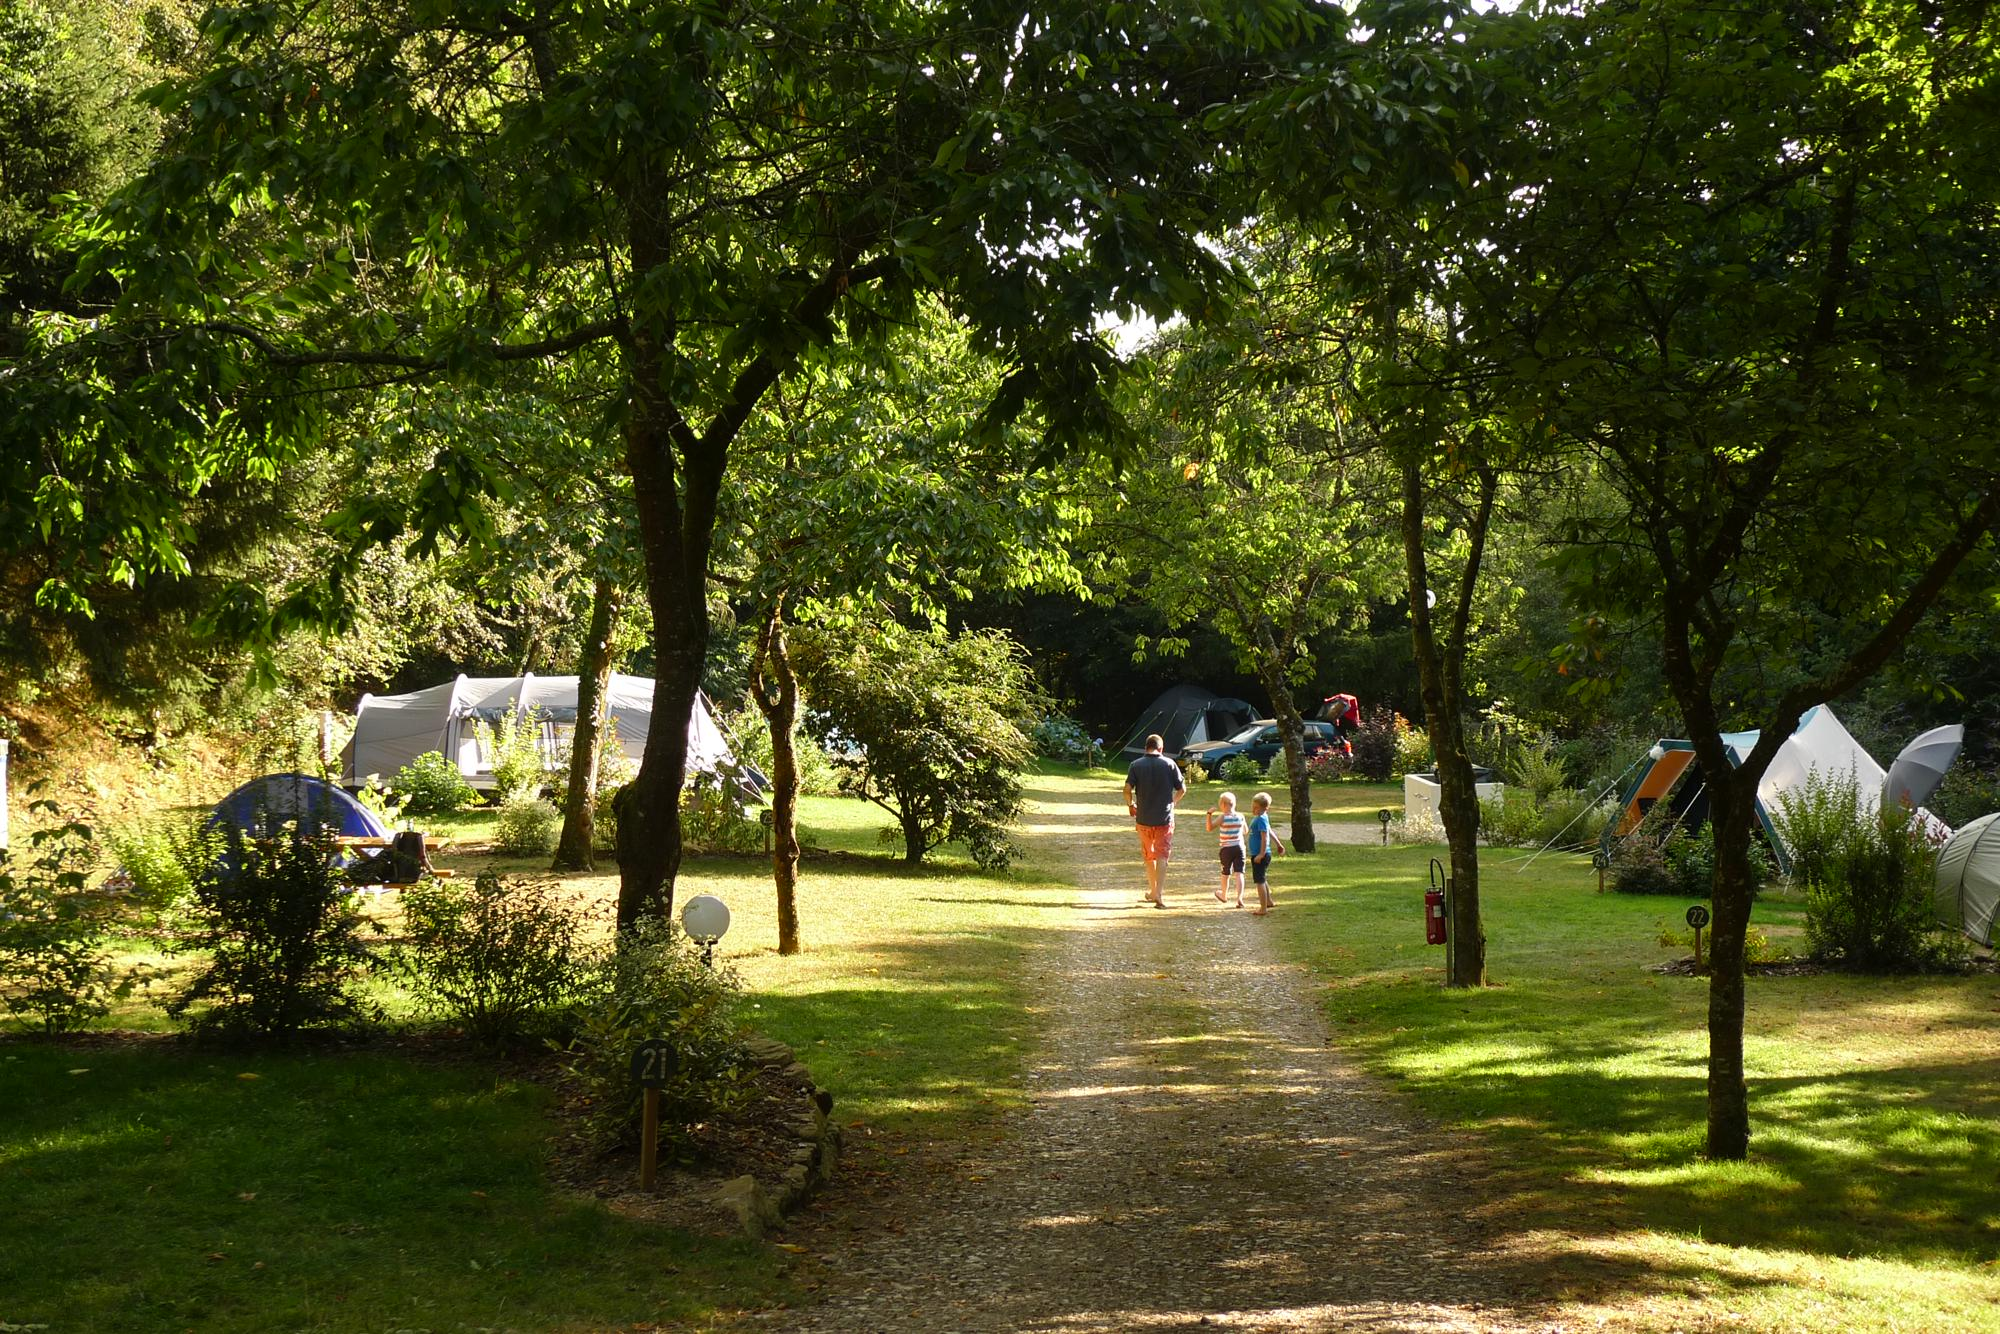 Glamping in Europe holidays at Cool Camping